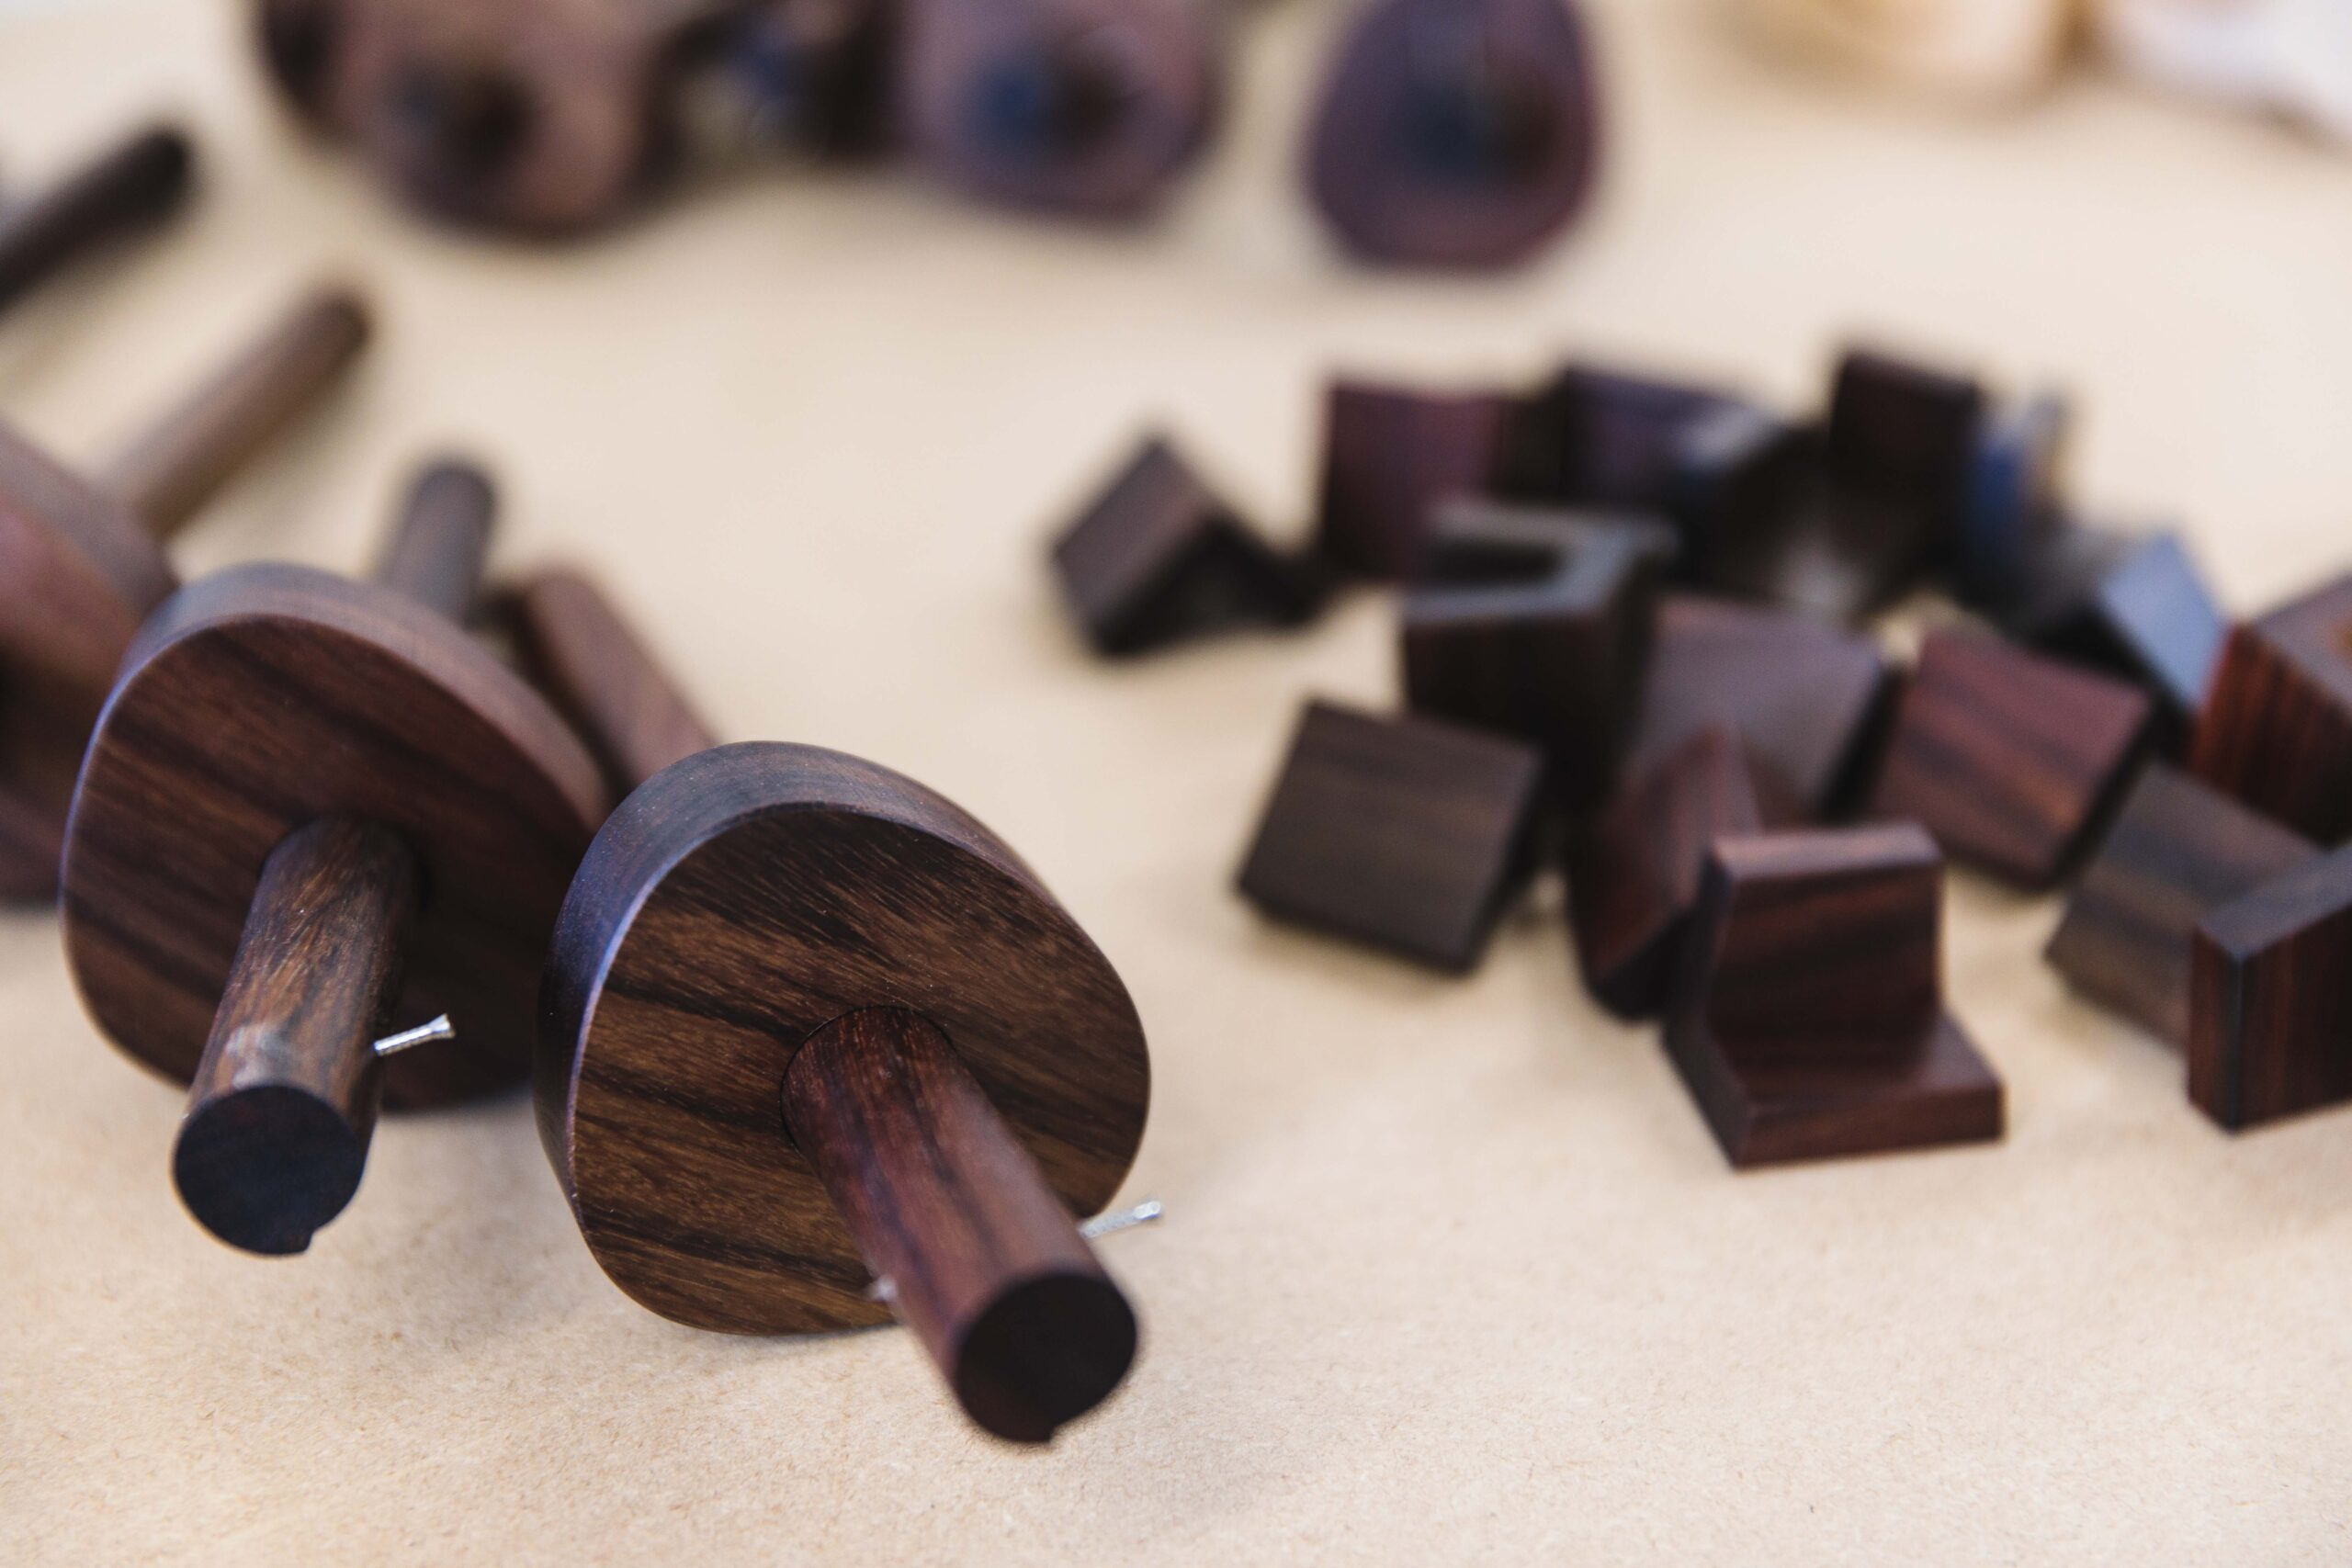 Rosewood marking gauges and rosewood dovetail markers. Hand tools made at Rowden Atelier for furniture making.